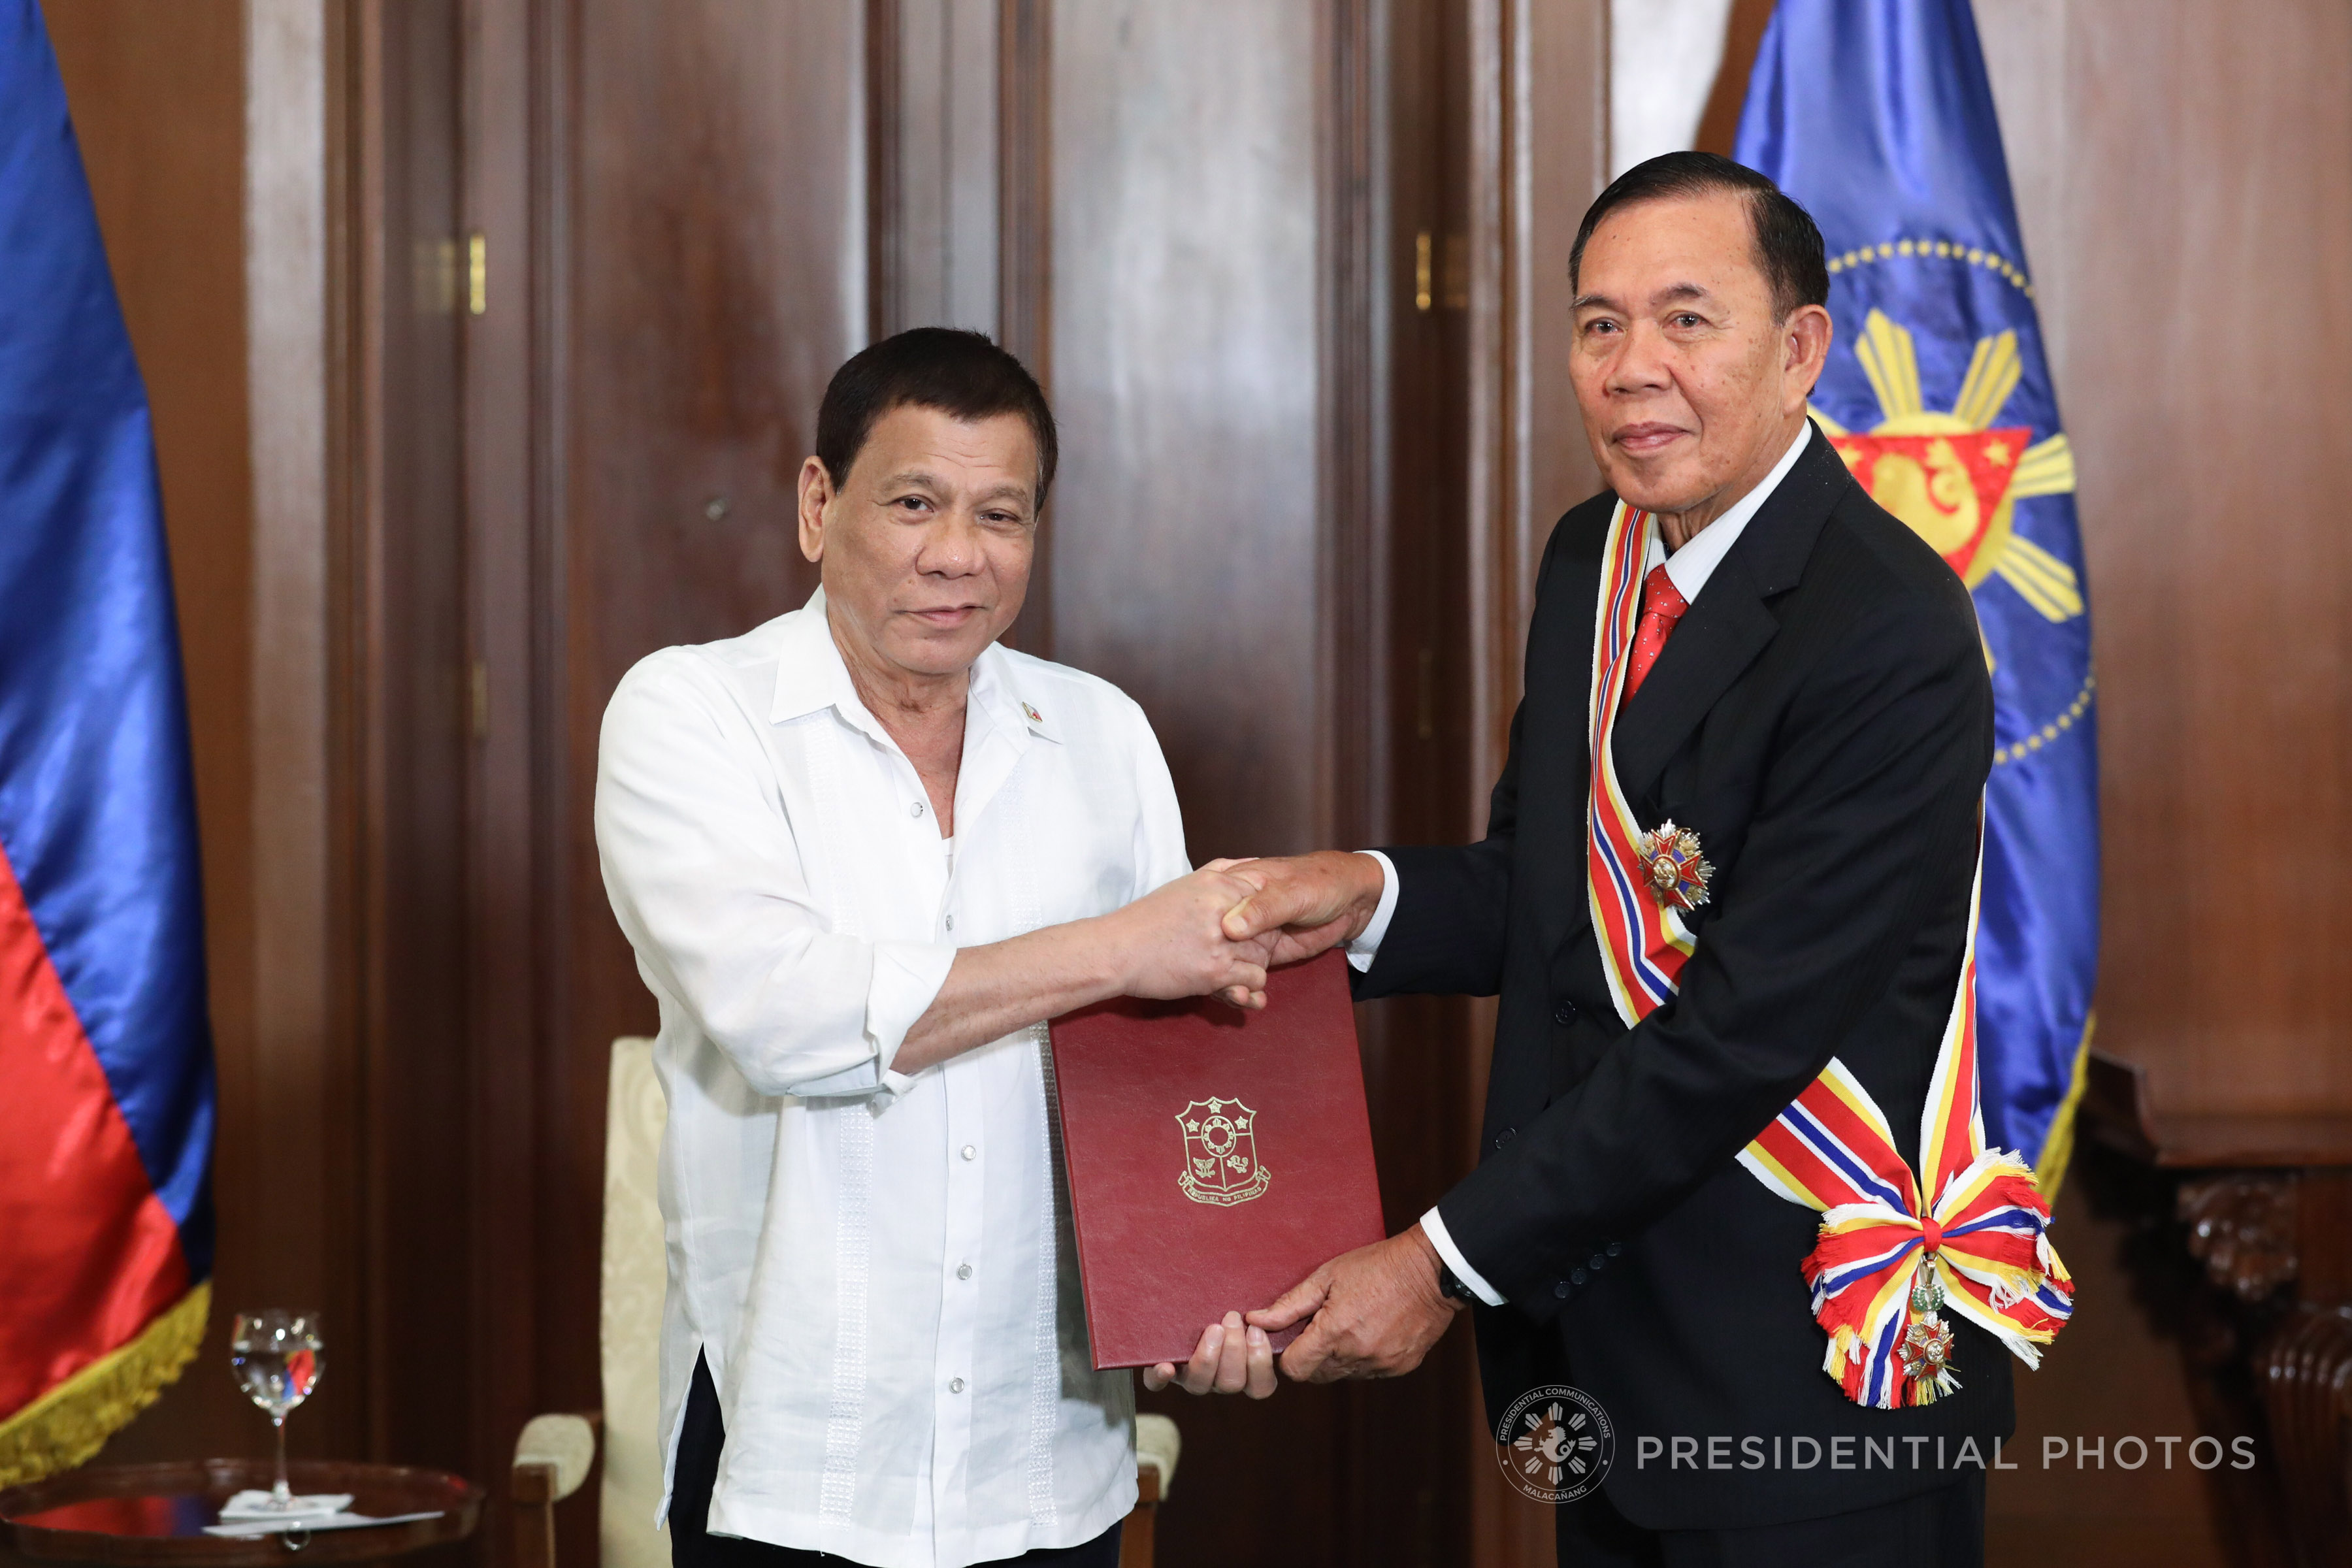 President Rodrigo Roa Duterte confers the Order of Sikatuna with the rank of Datu on outgoing Indonesian Ambassador to the Philippines Johny Lumintang who paid a farewell call on the President at the Malacañan Palace on November 23, 2017. (Photo by Rey Baniquet/Presidential Photo)